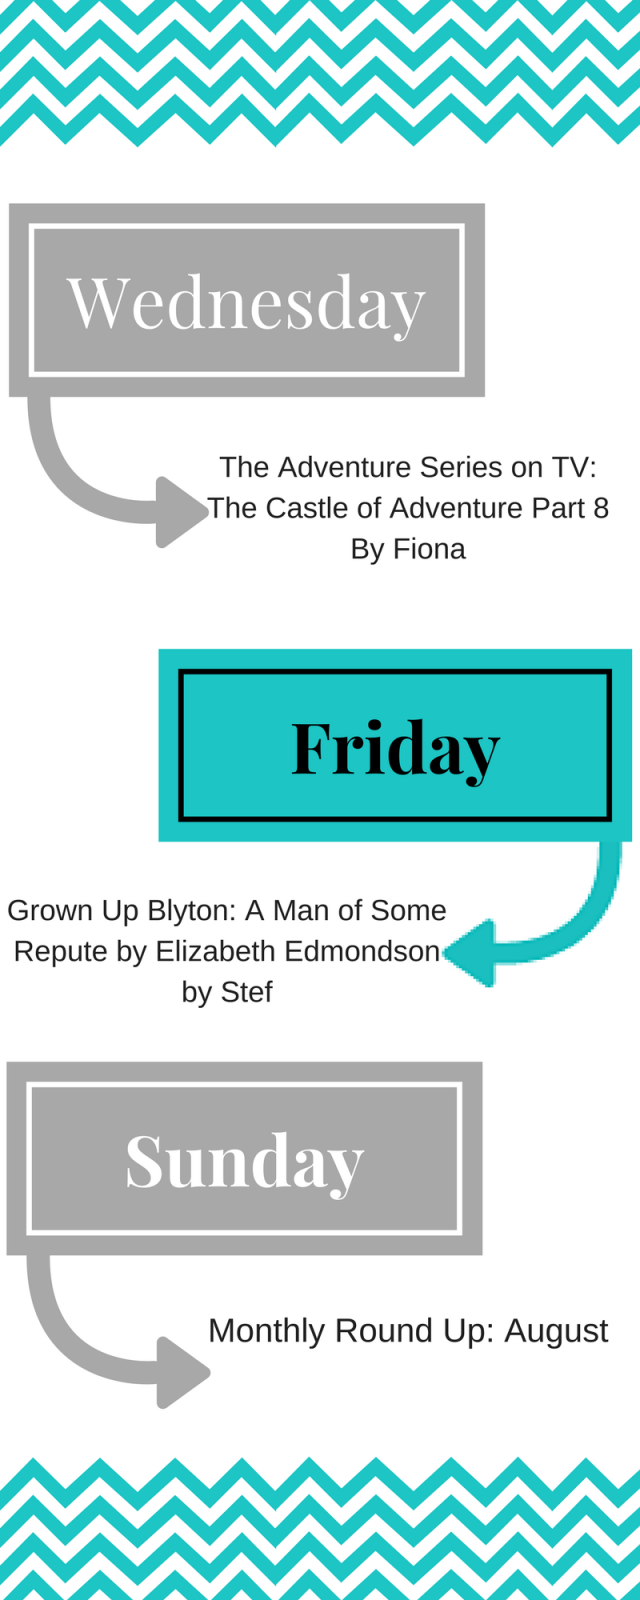 World Of Blyton Enthusiastic Ramblings About Enid And Her Mystery The Vanished Prince Monday232